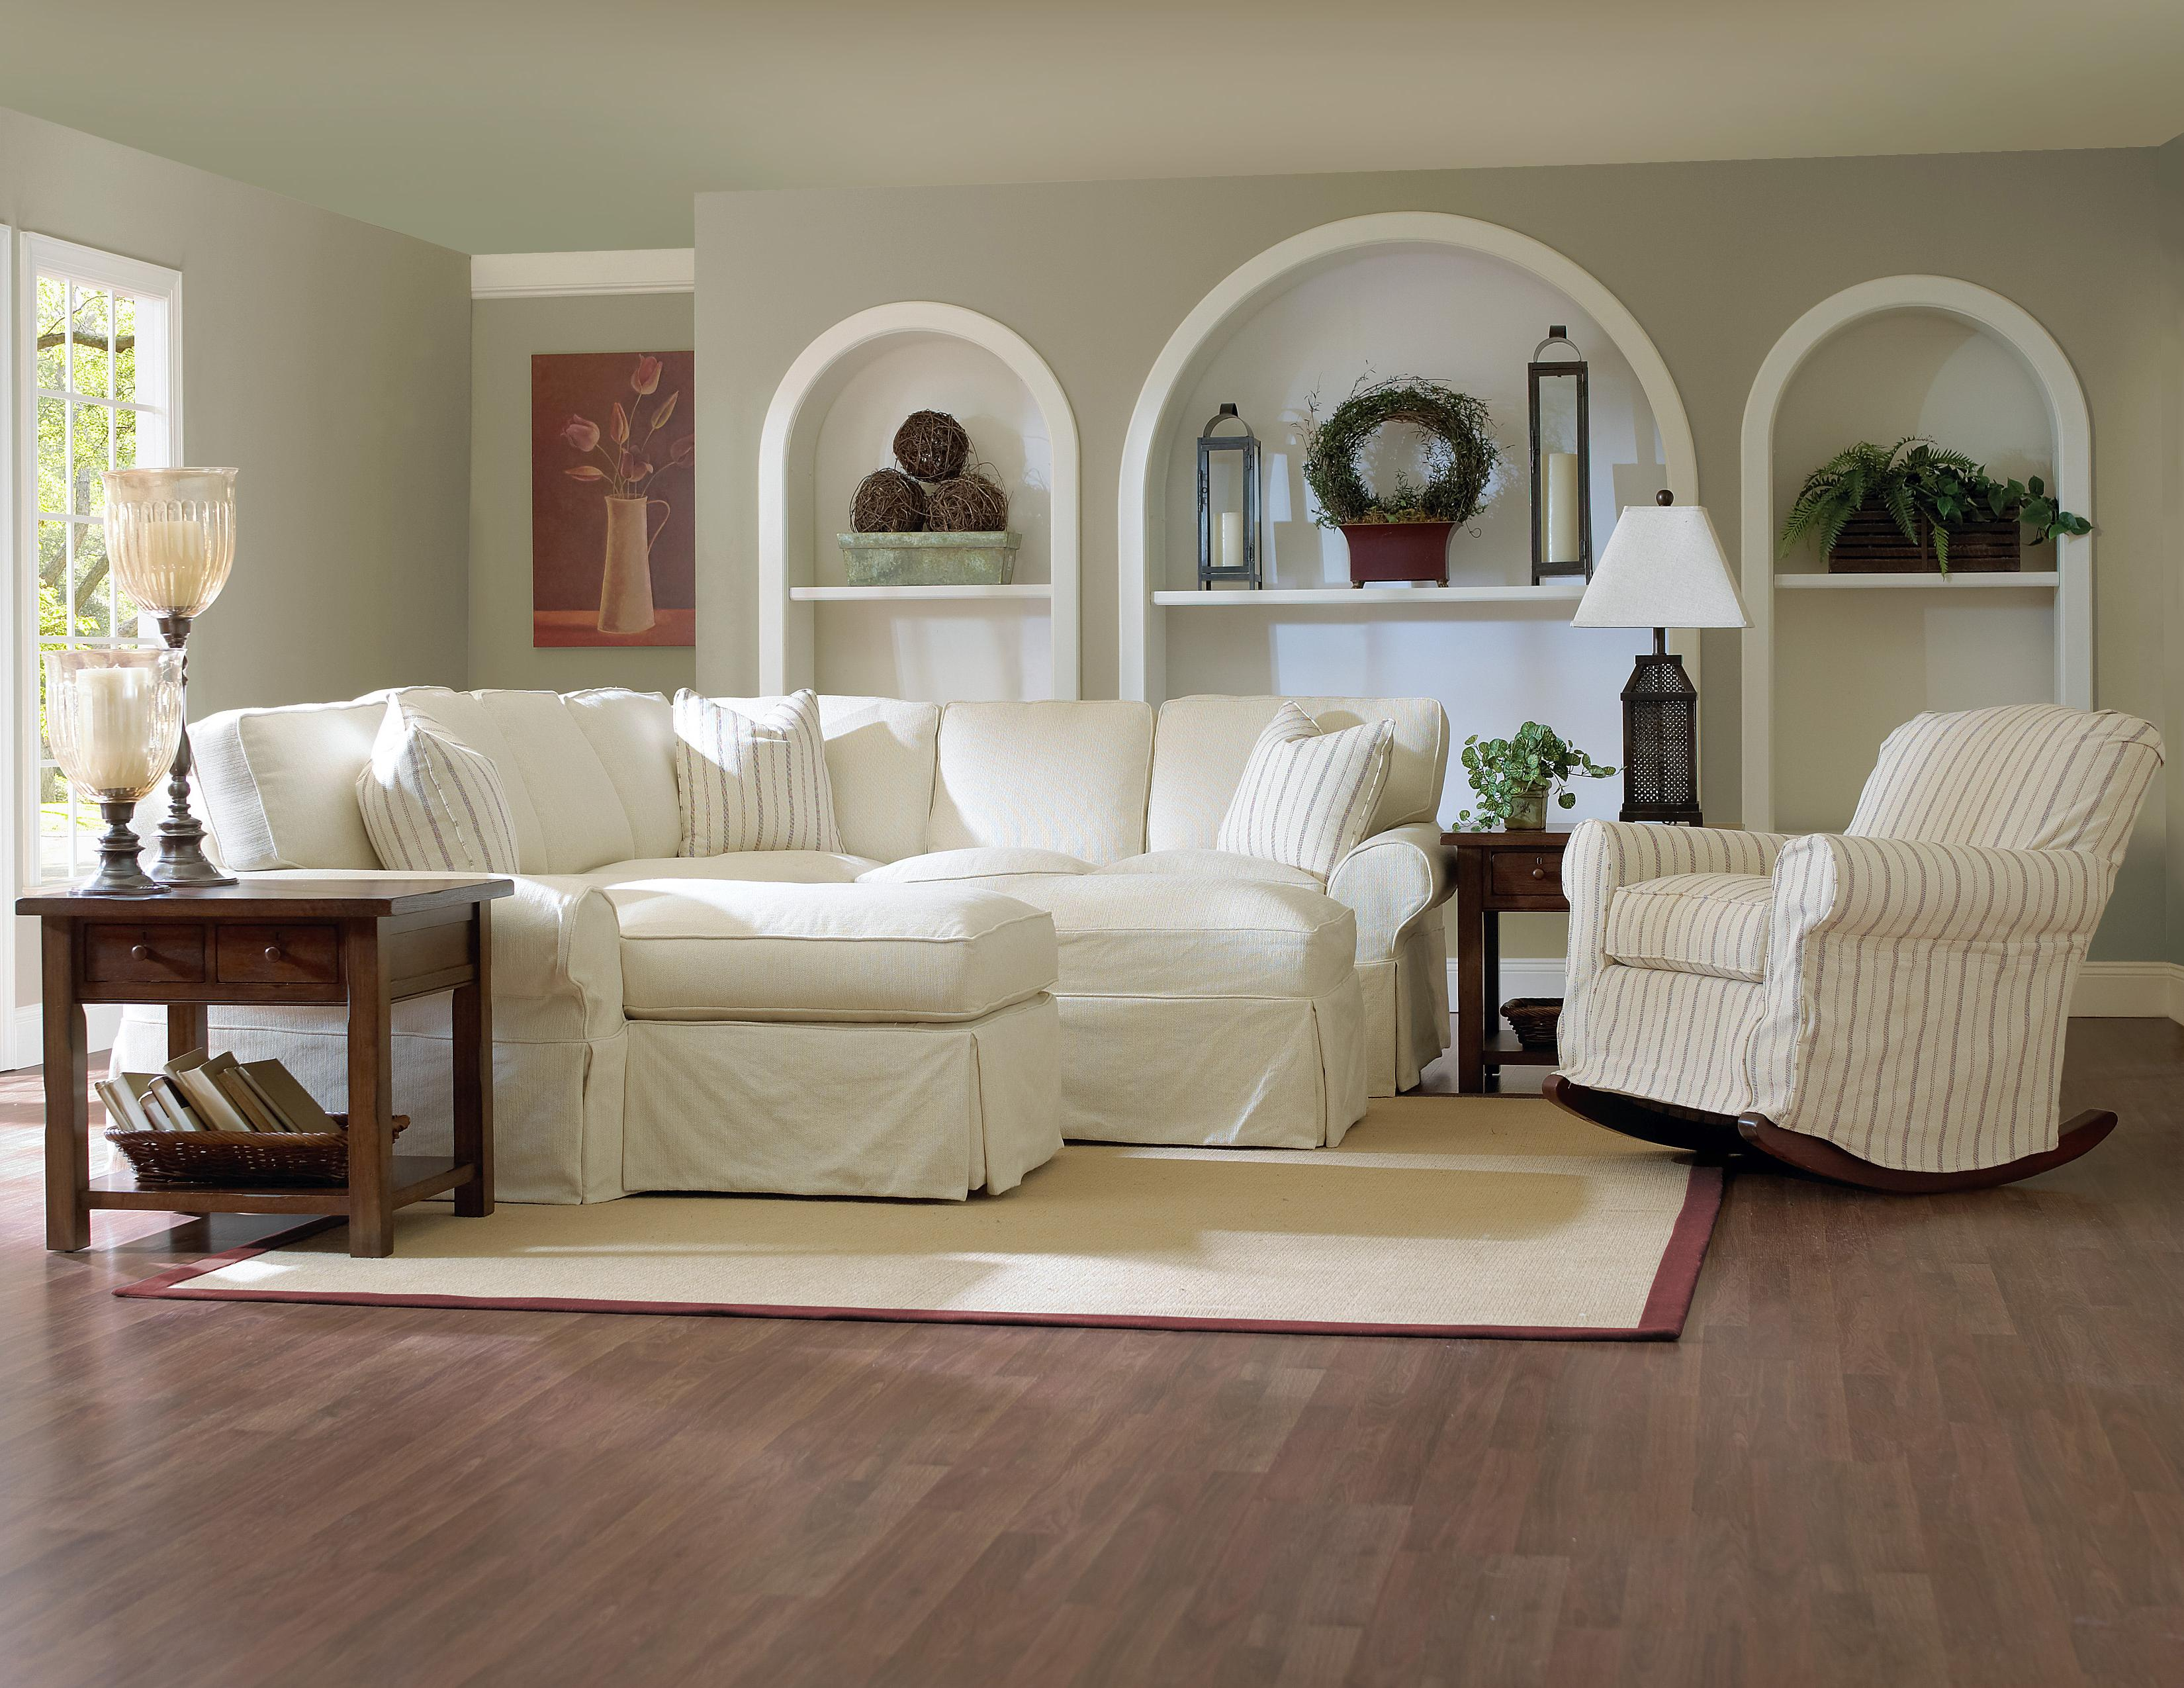 Awesome Slipcovers For Sectional Couches